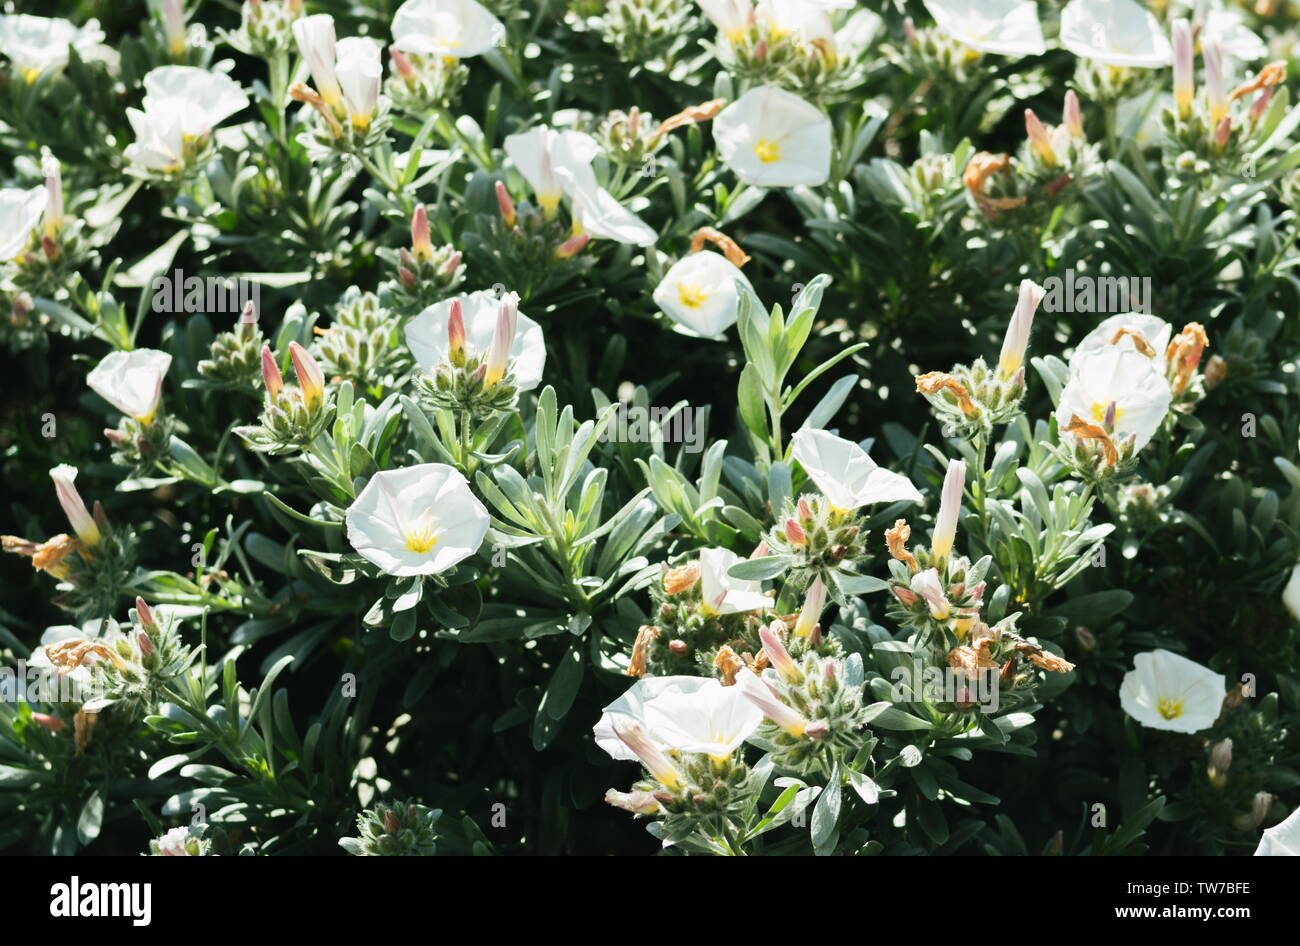 Convolvulus cneorum, also known as silverbush or shrubby bindweed, is a species of flowering plant in the family Convolvulaceae, which contains many p - Stock Image